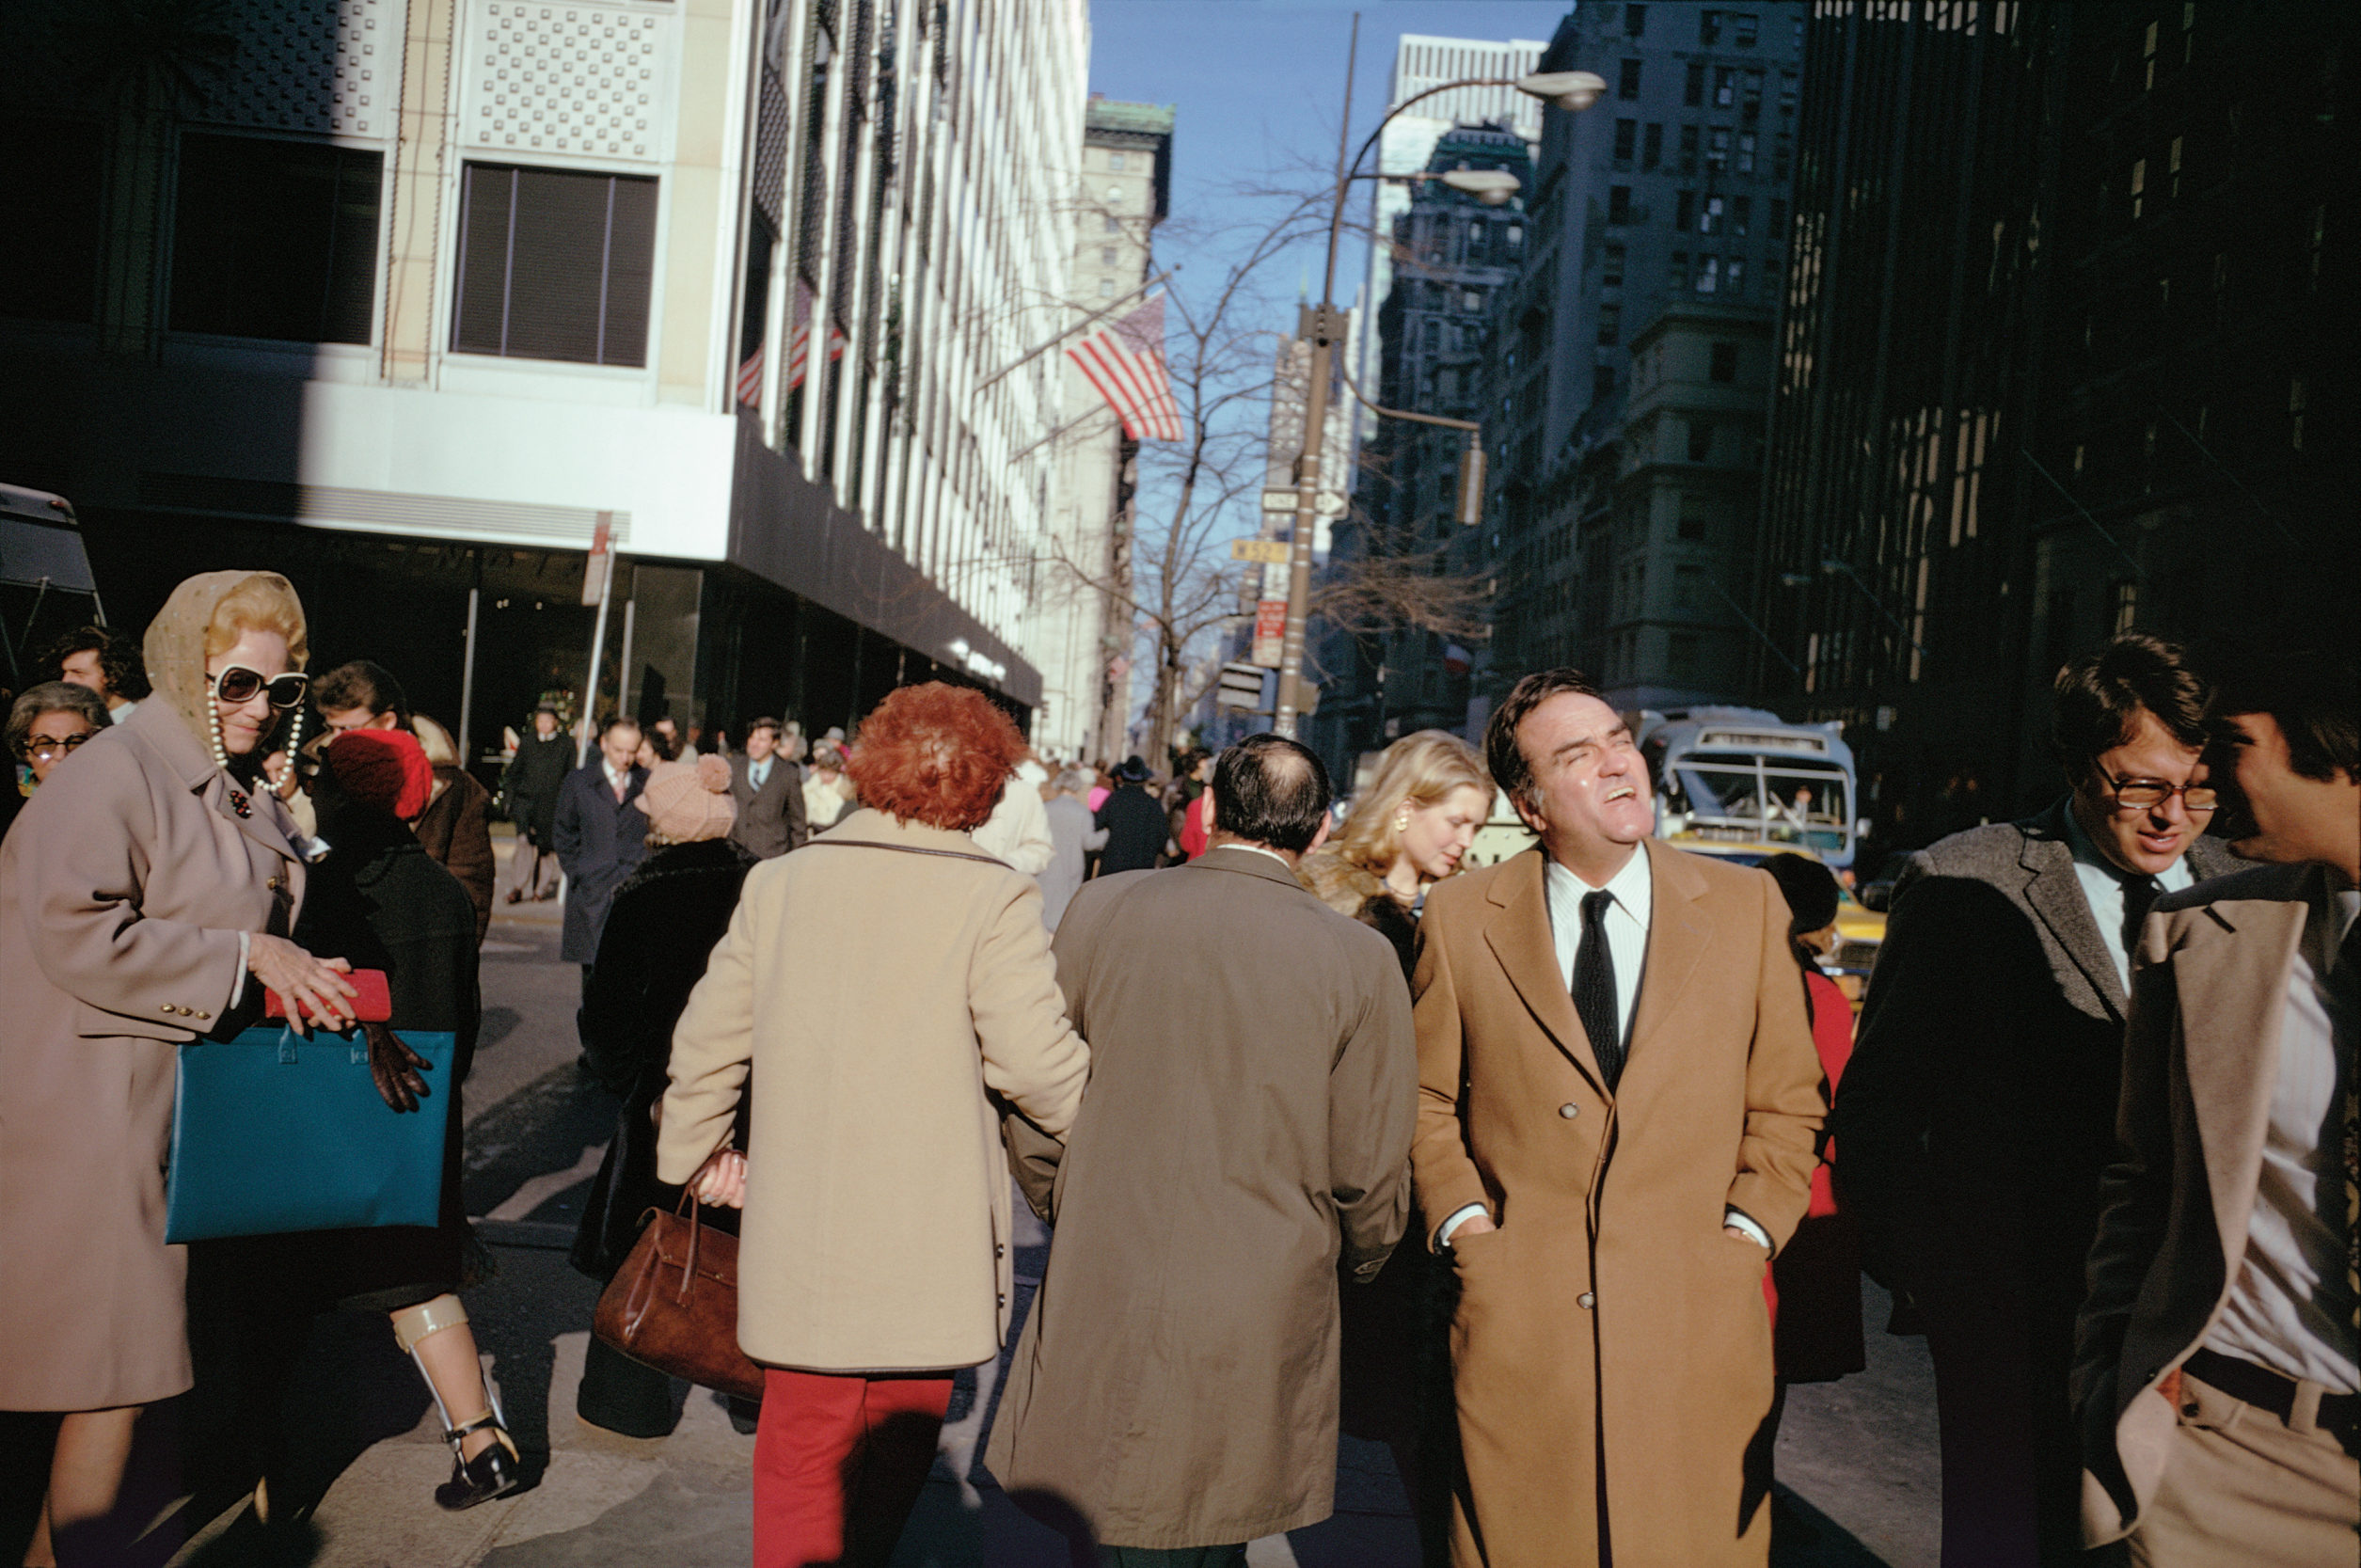 © Joel Meyerowitz, New-York City, 1974